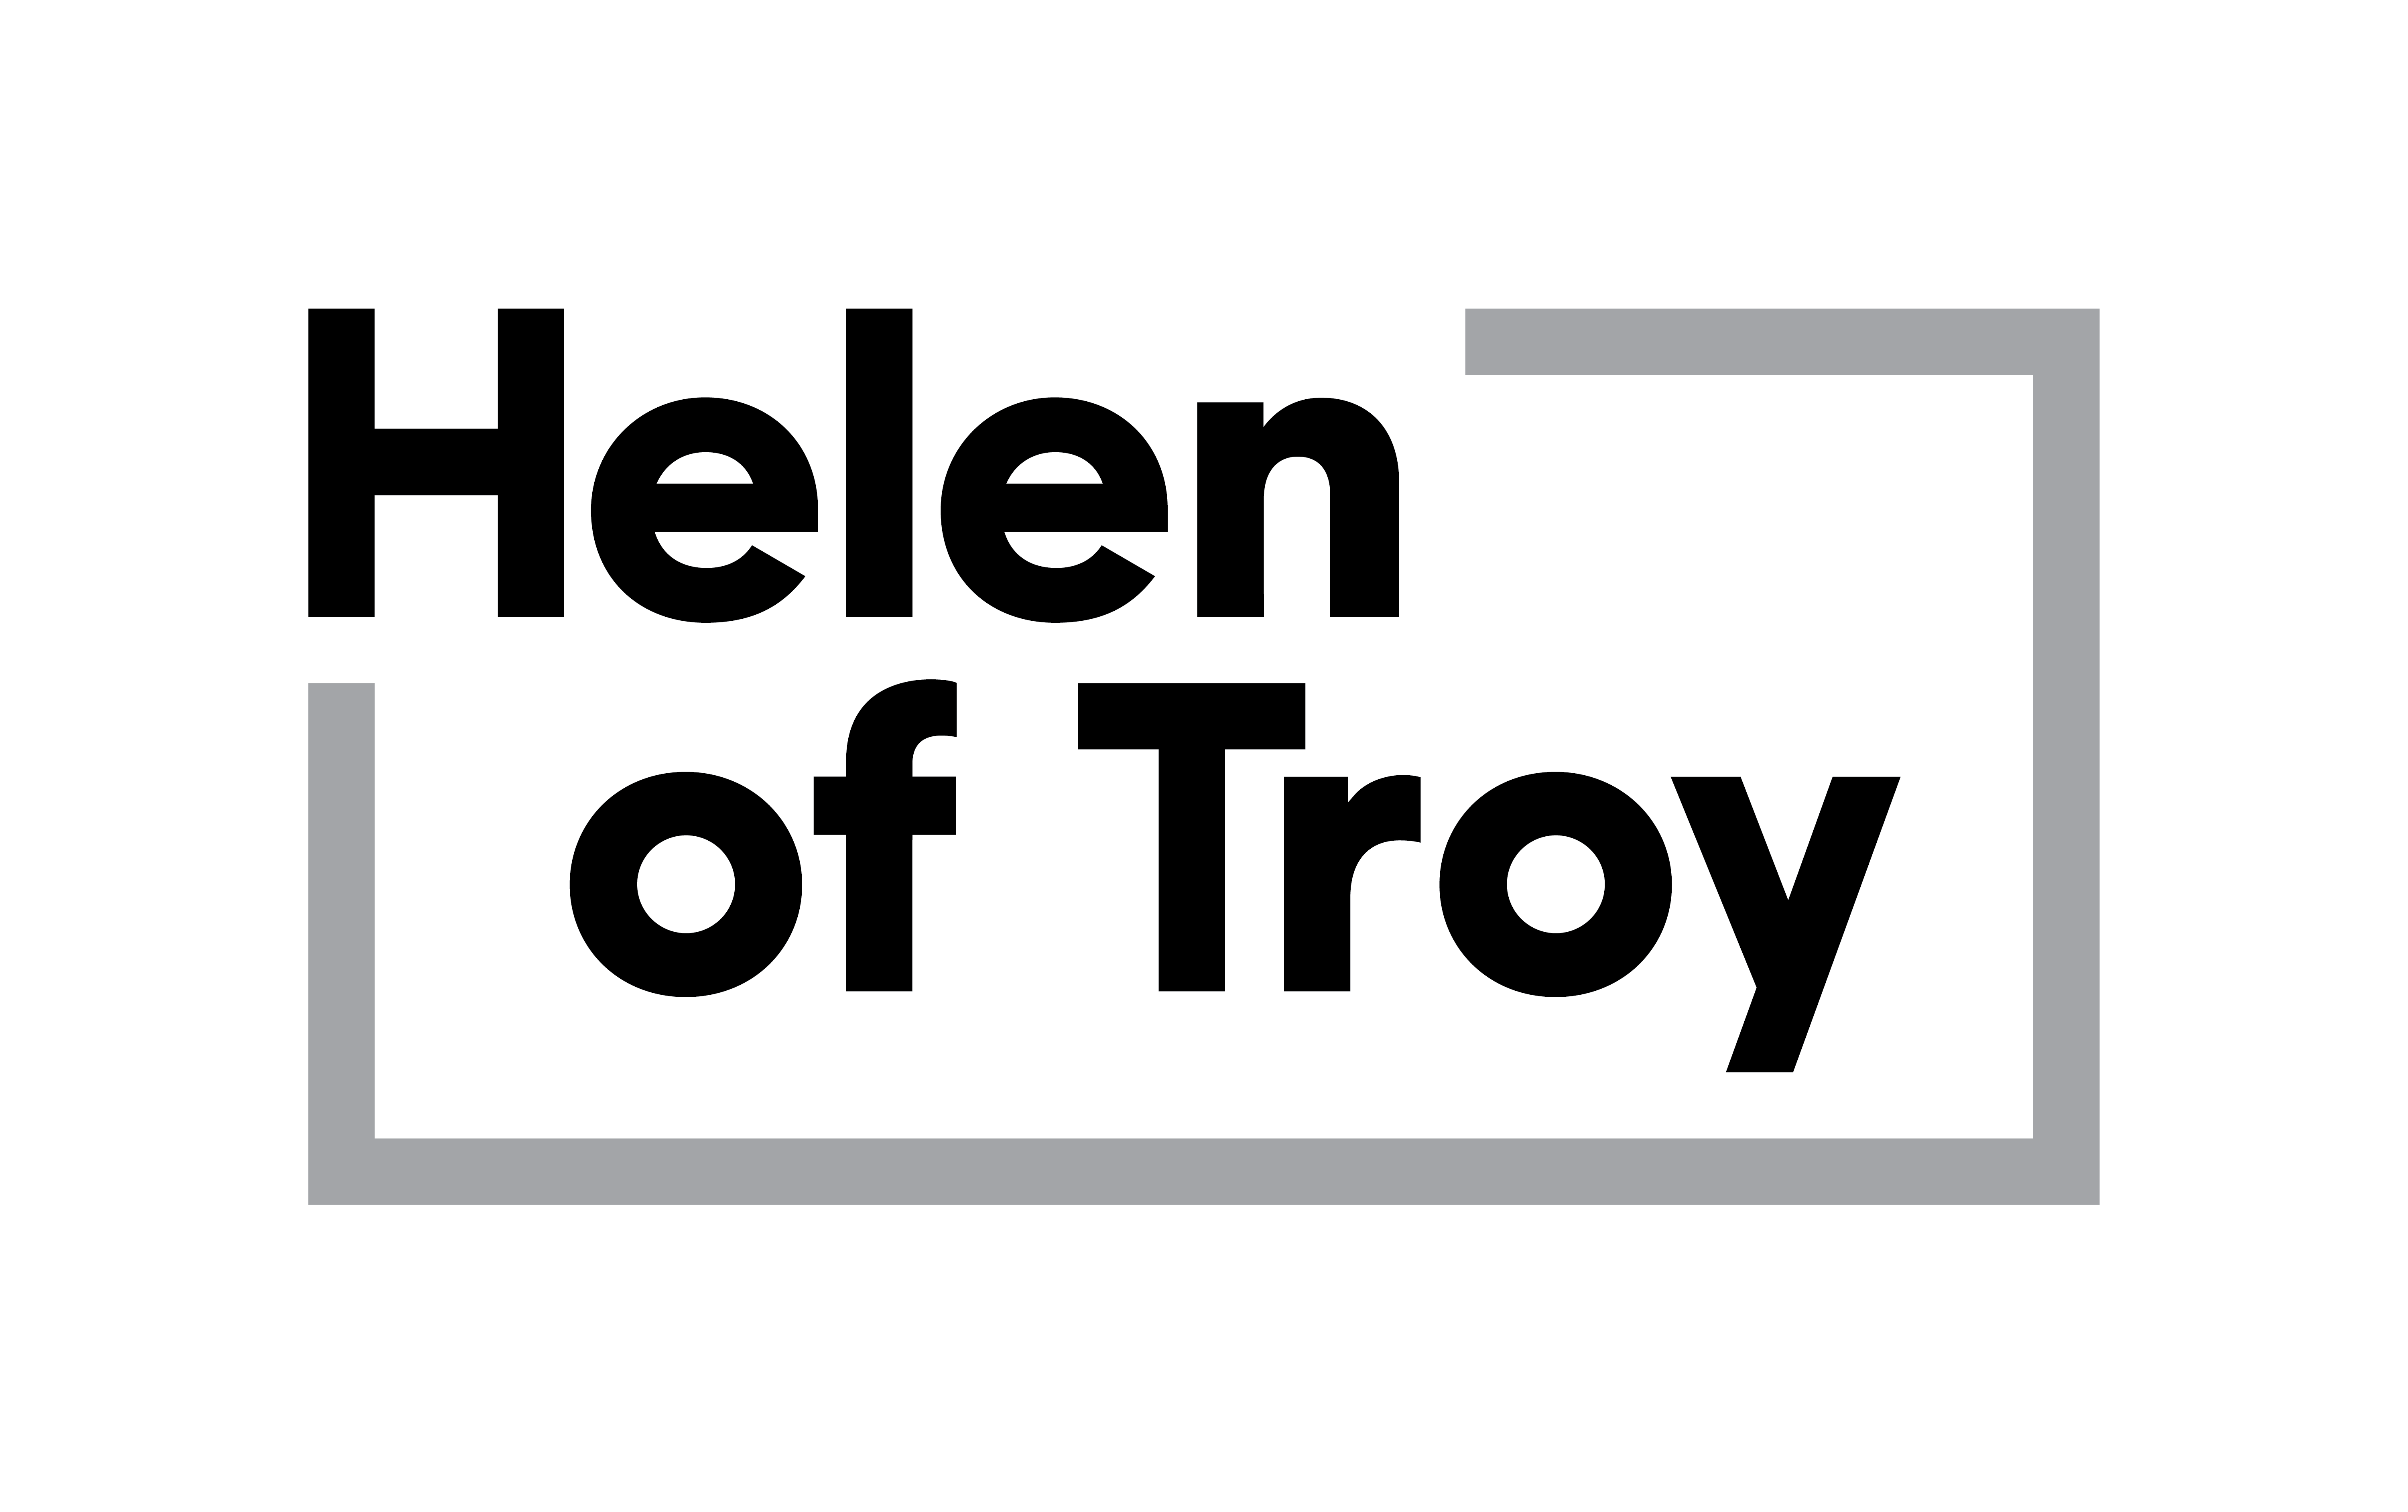 Helen of Troy Outlet